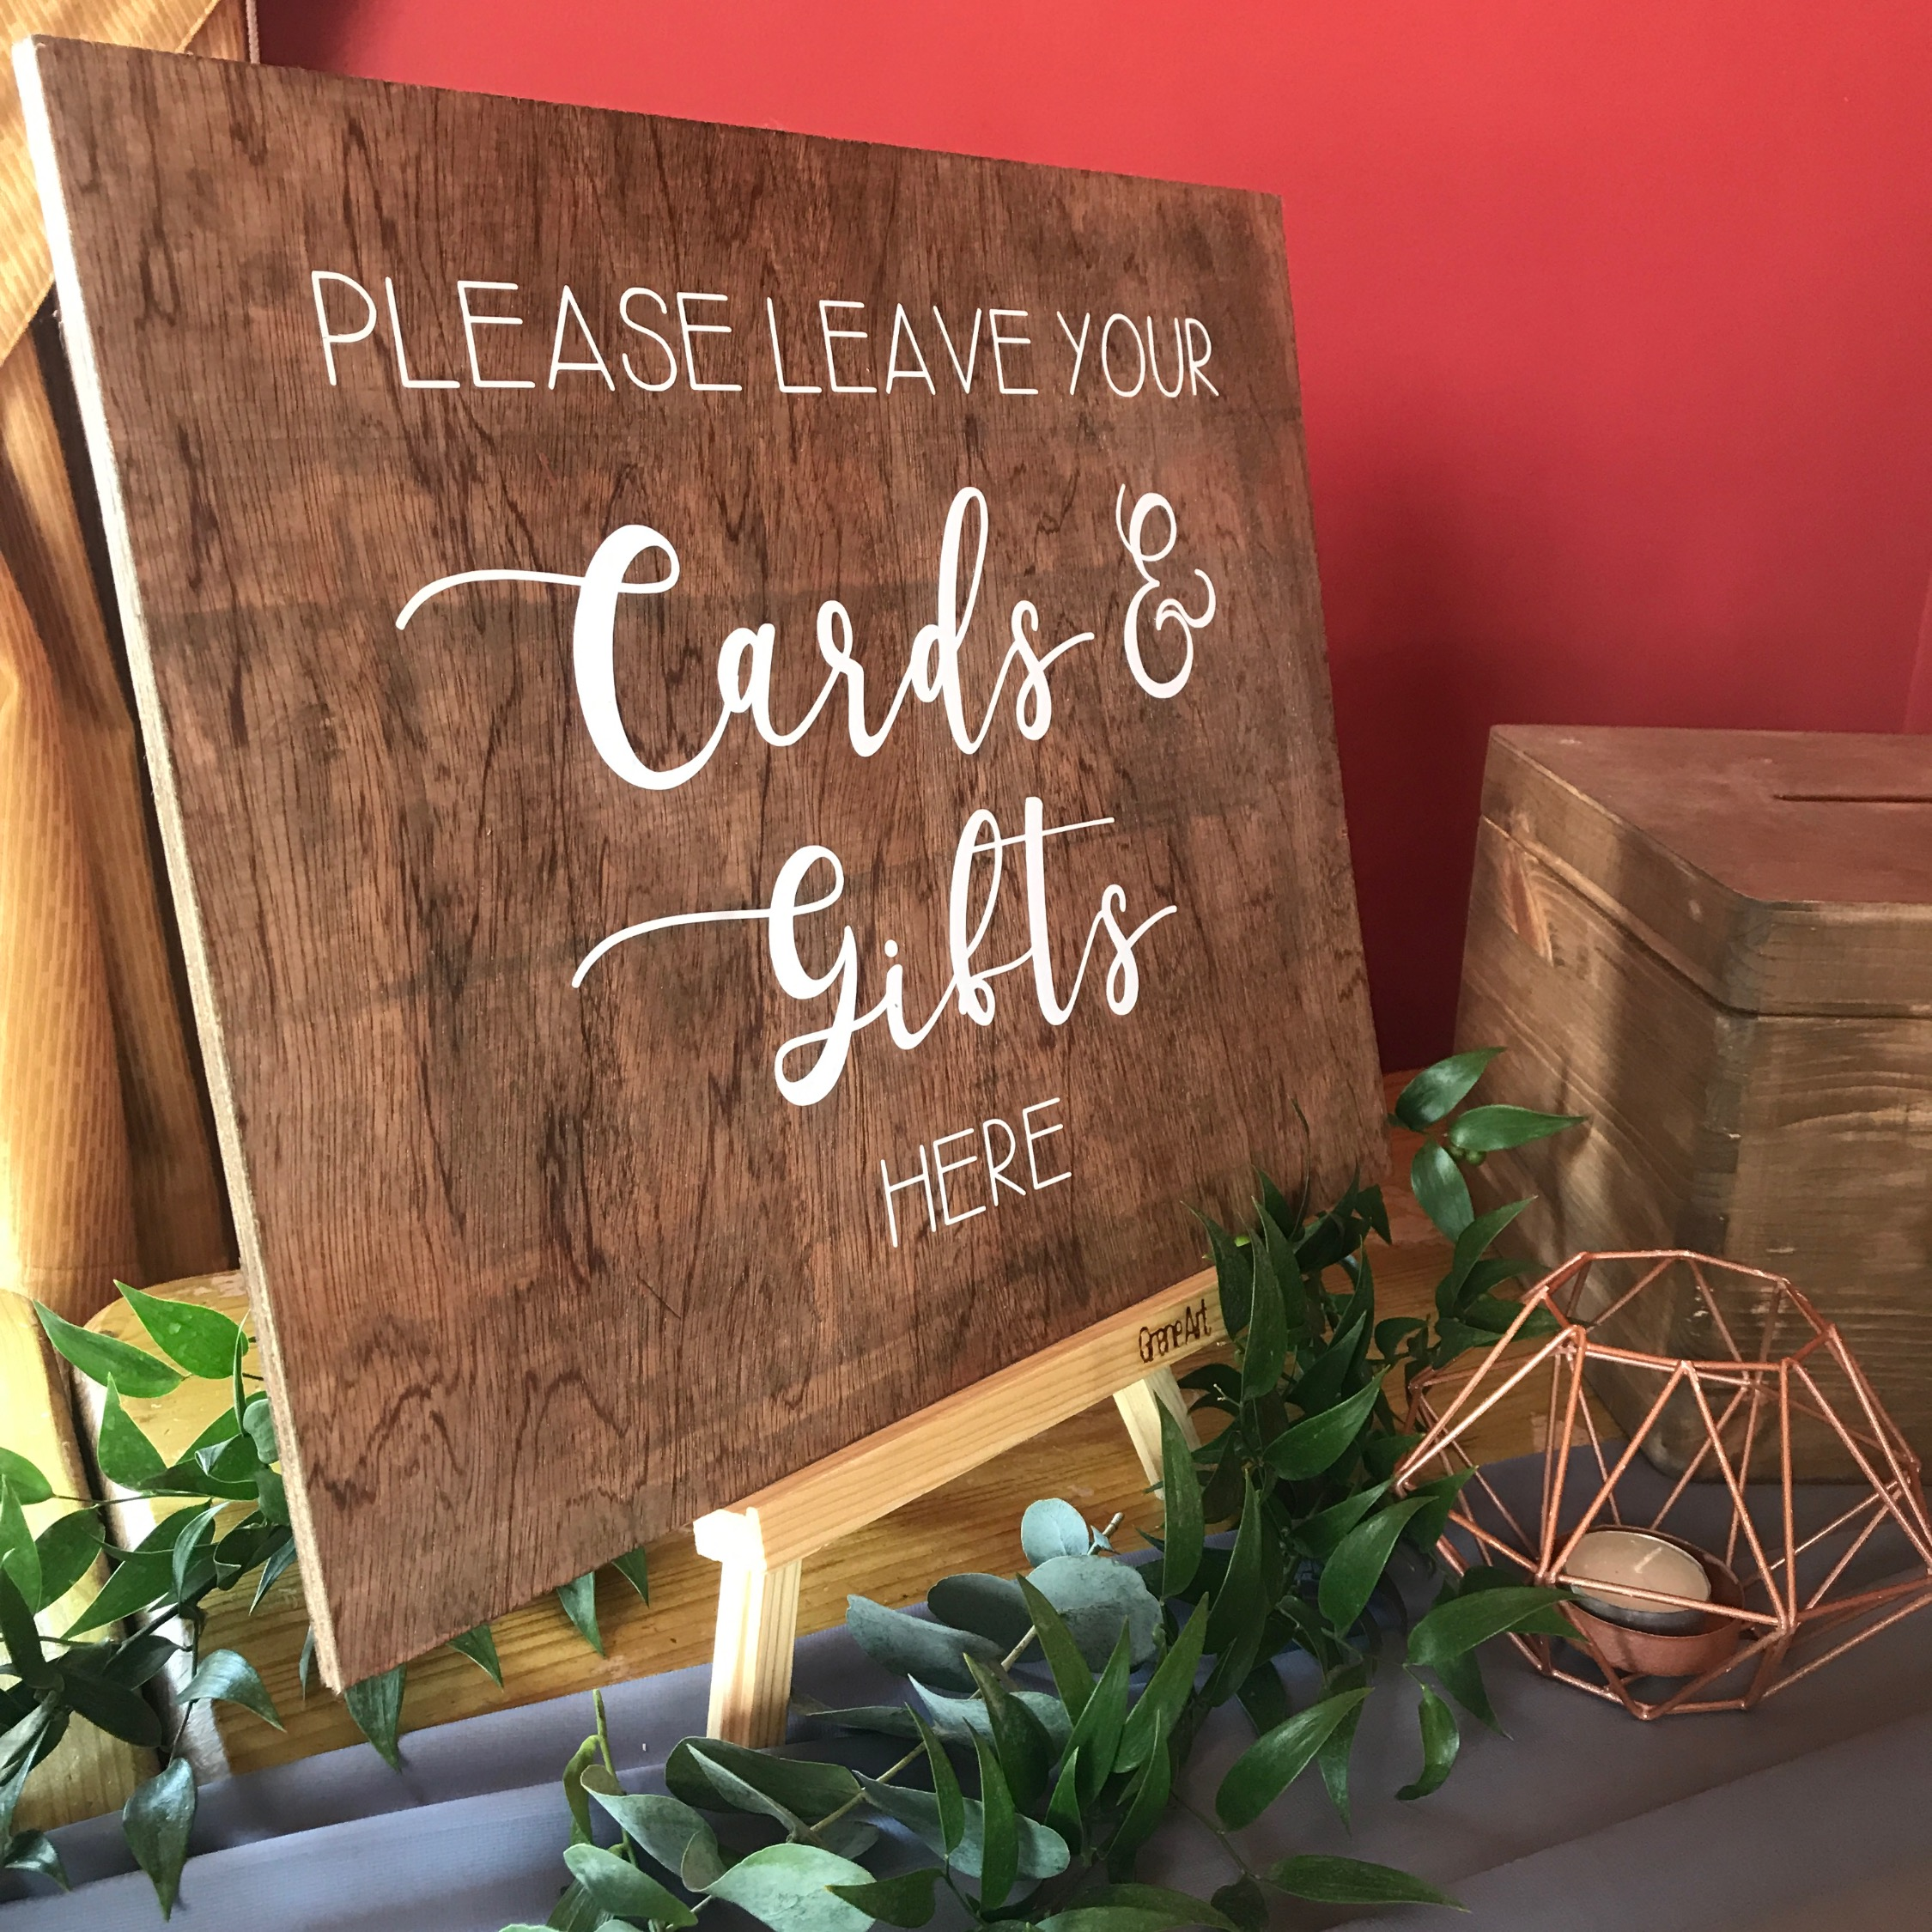 A4 WOODEN CARDS & GIFTS SIGN